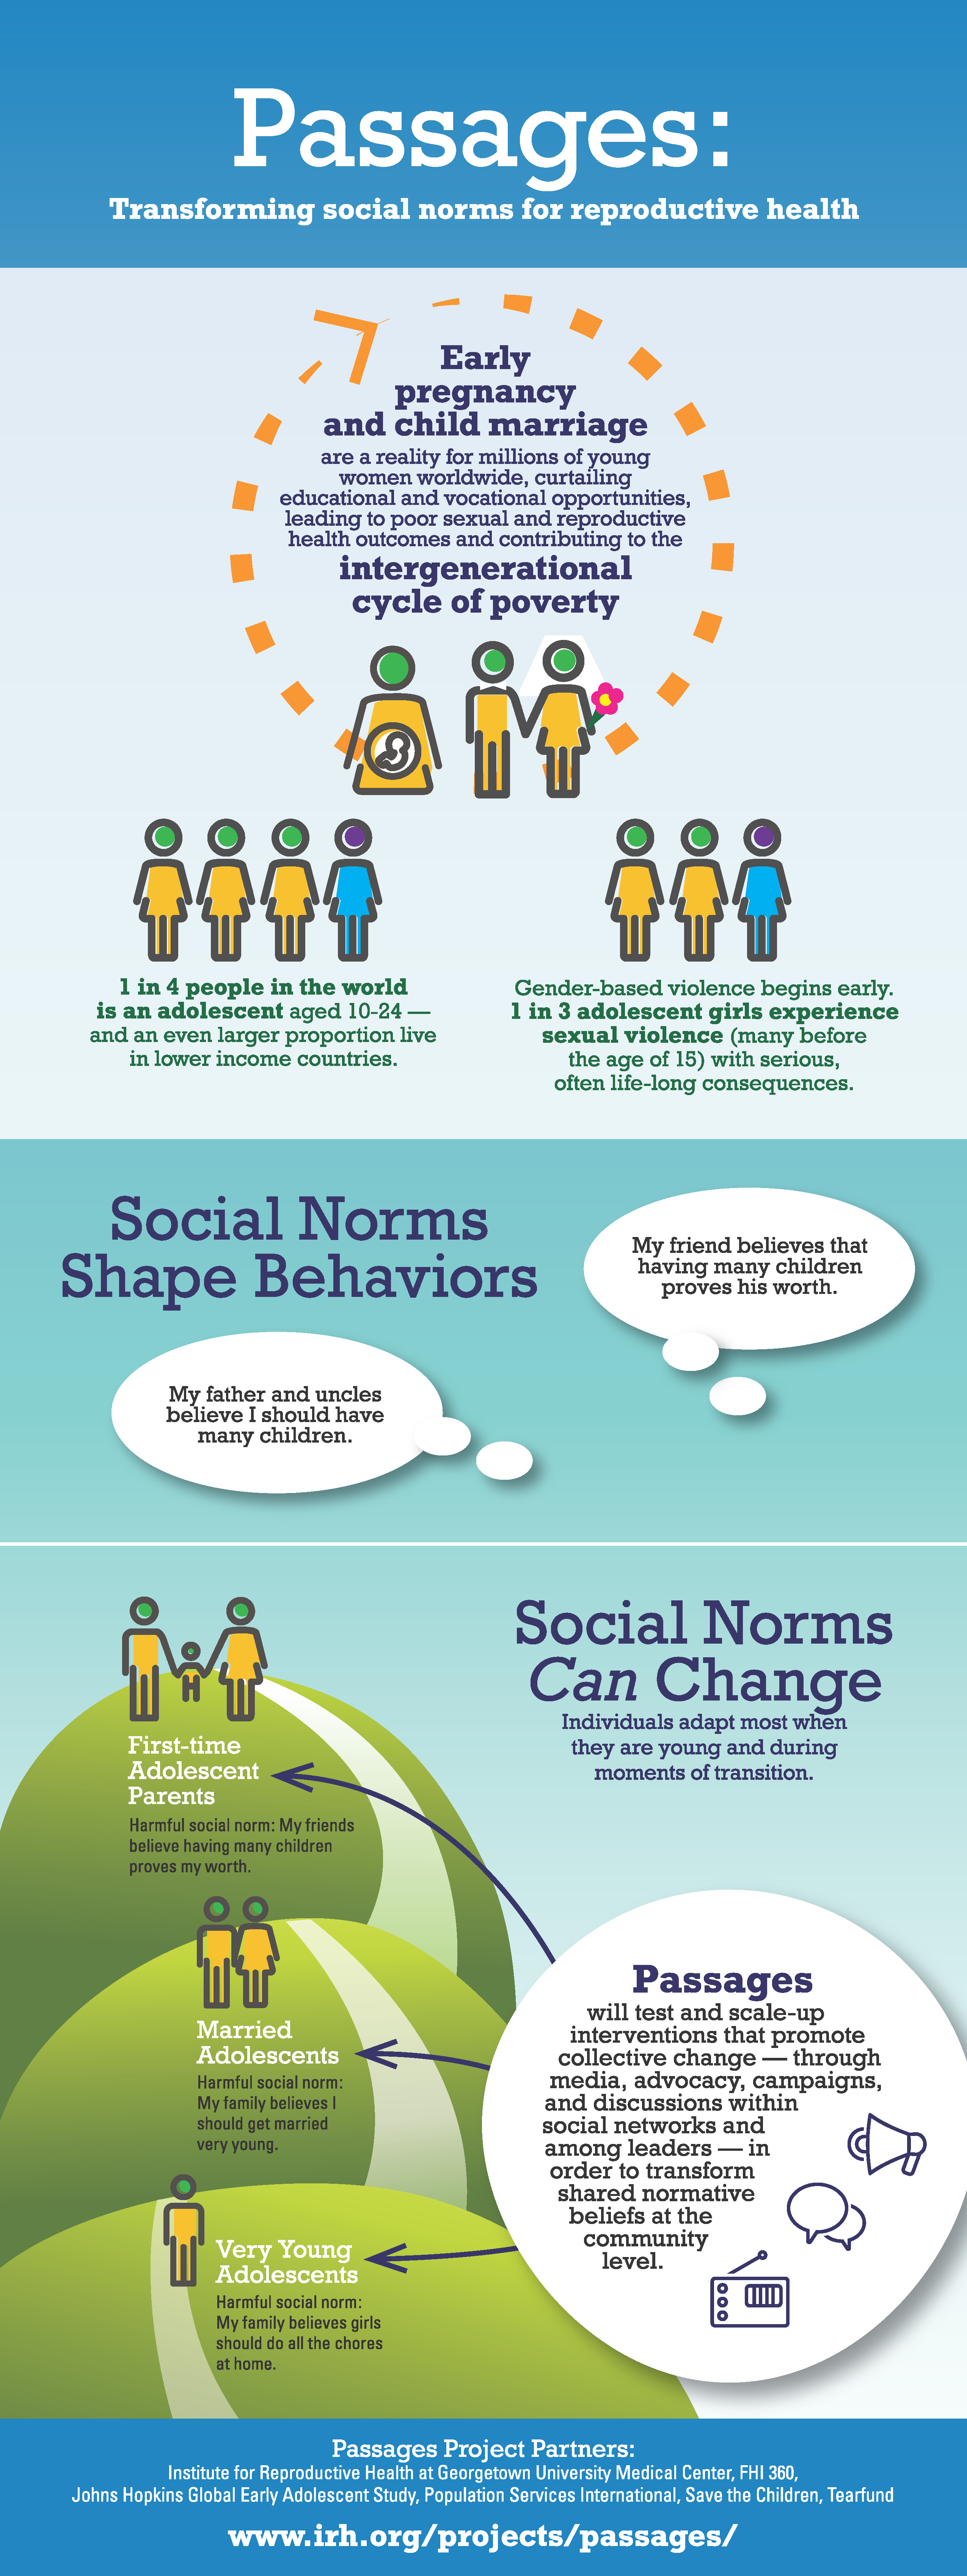 Passages_Social_Norms_Infographic